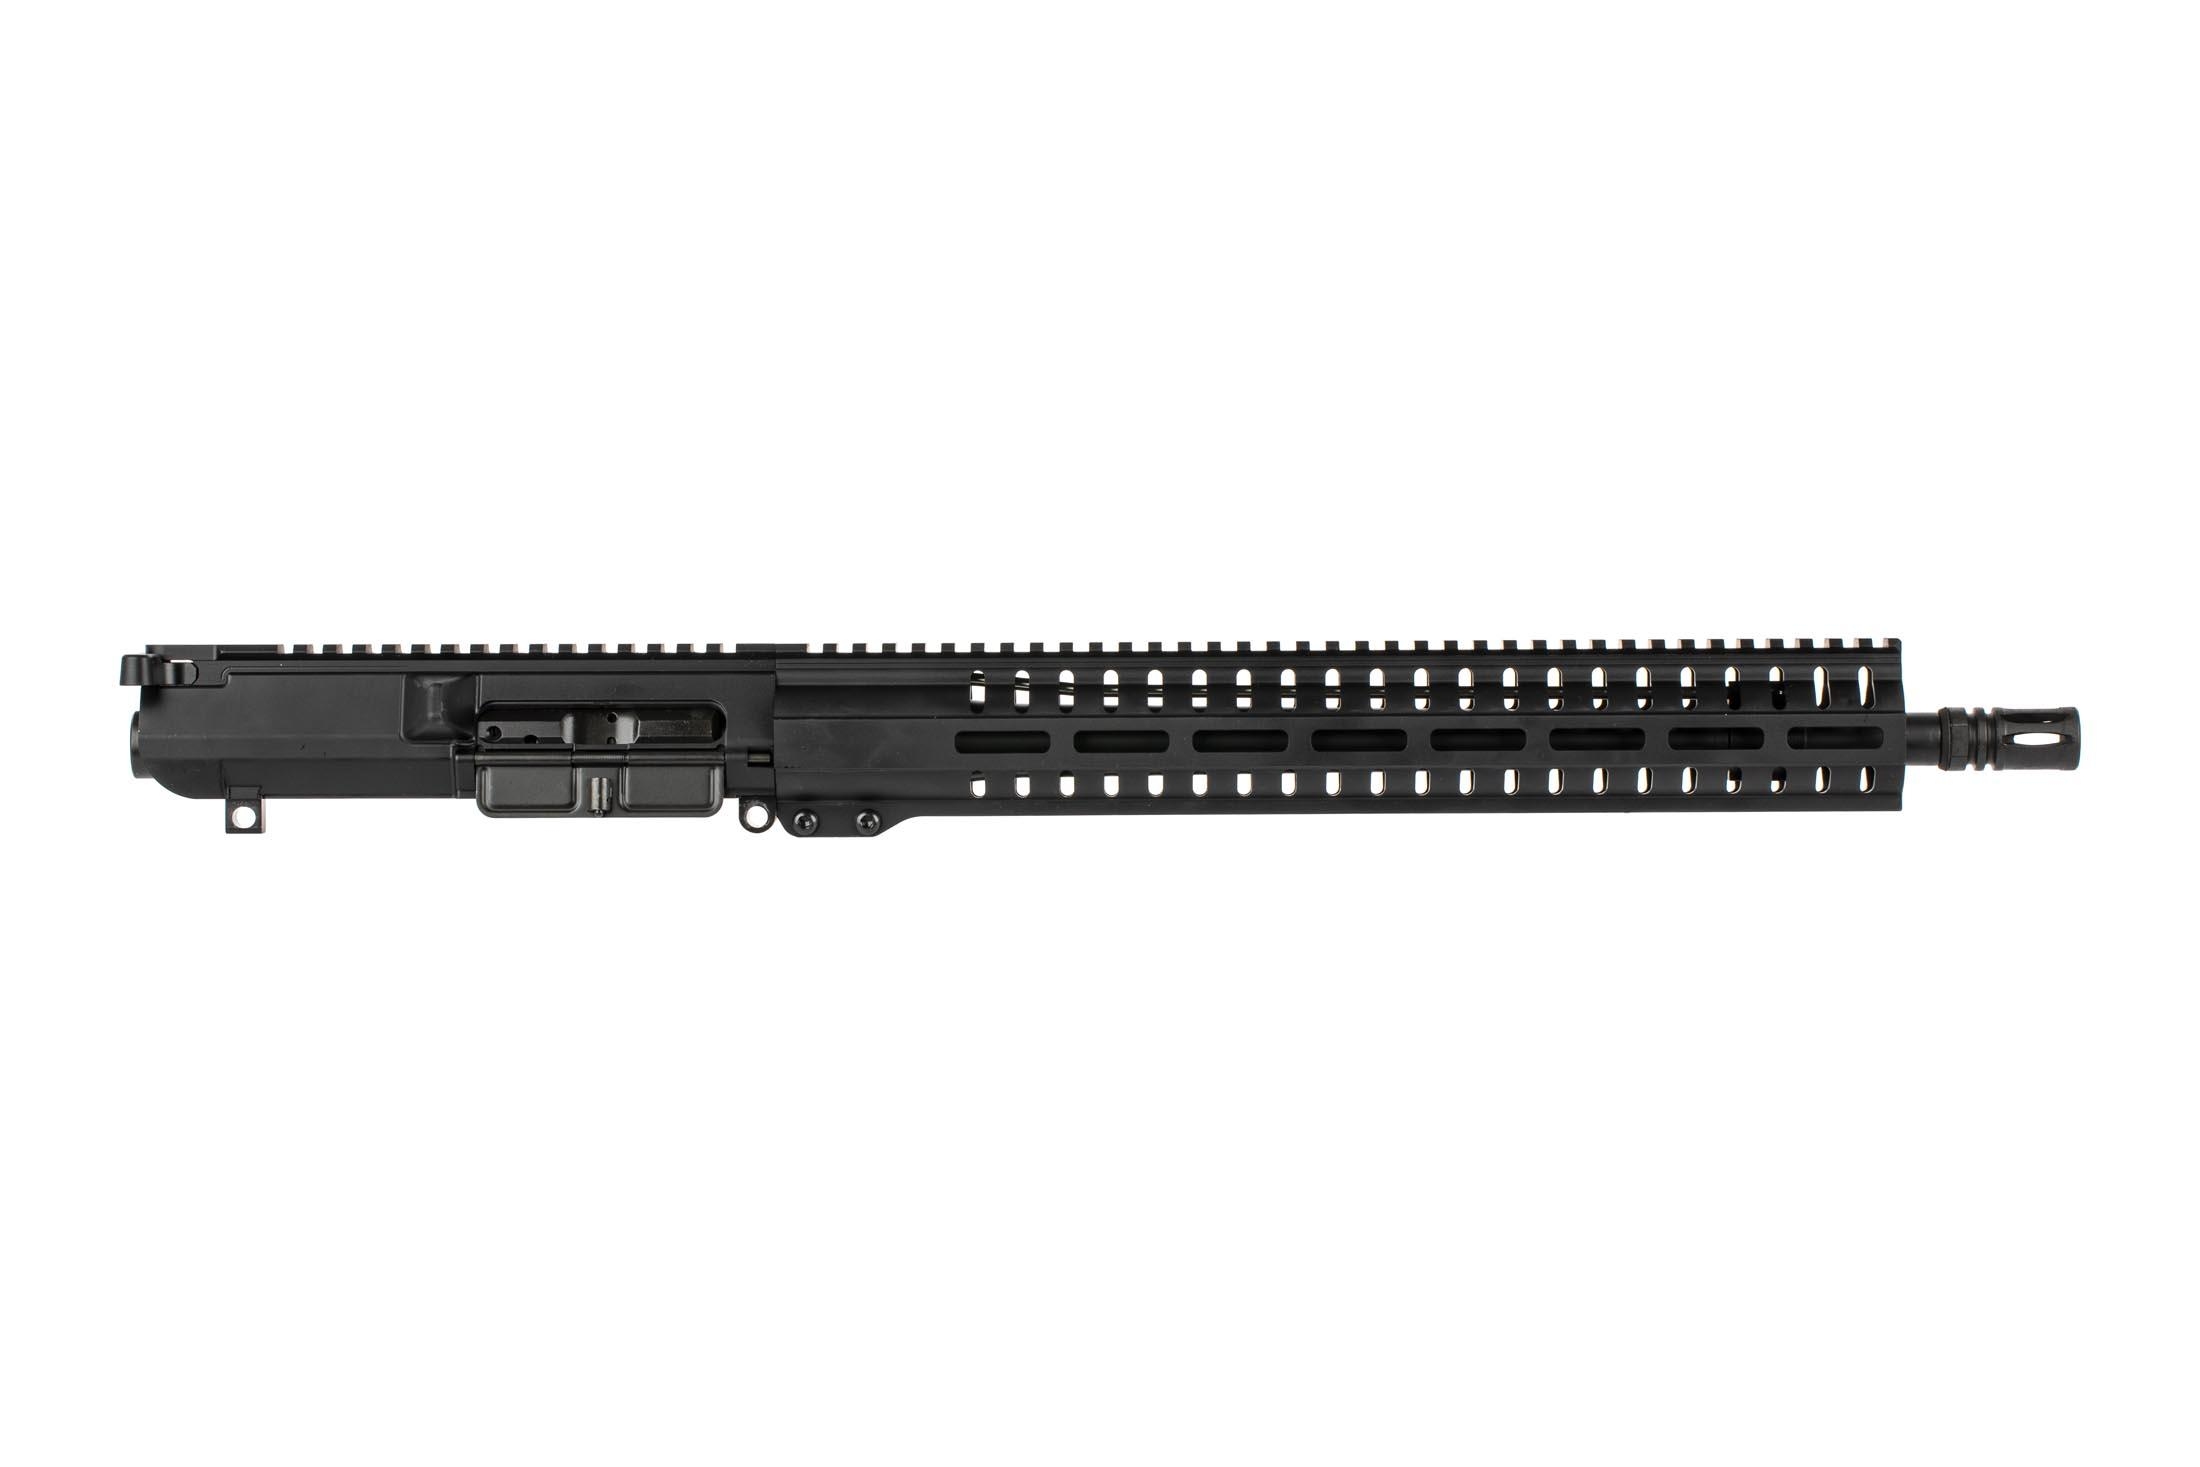 The CMMG Resolute .308 complete upper receiver assembly features a 15 inch M-LOK free float handguard